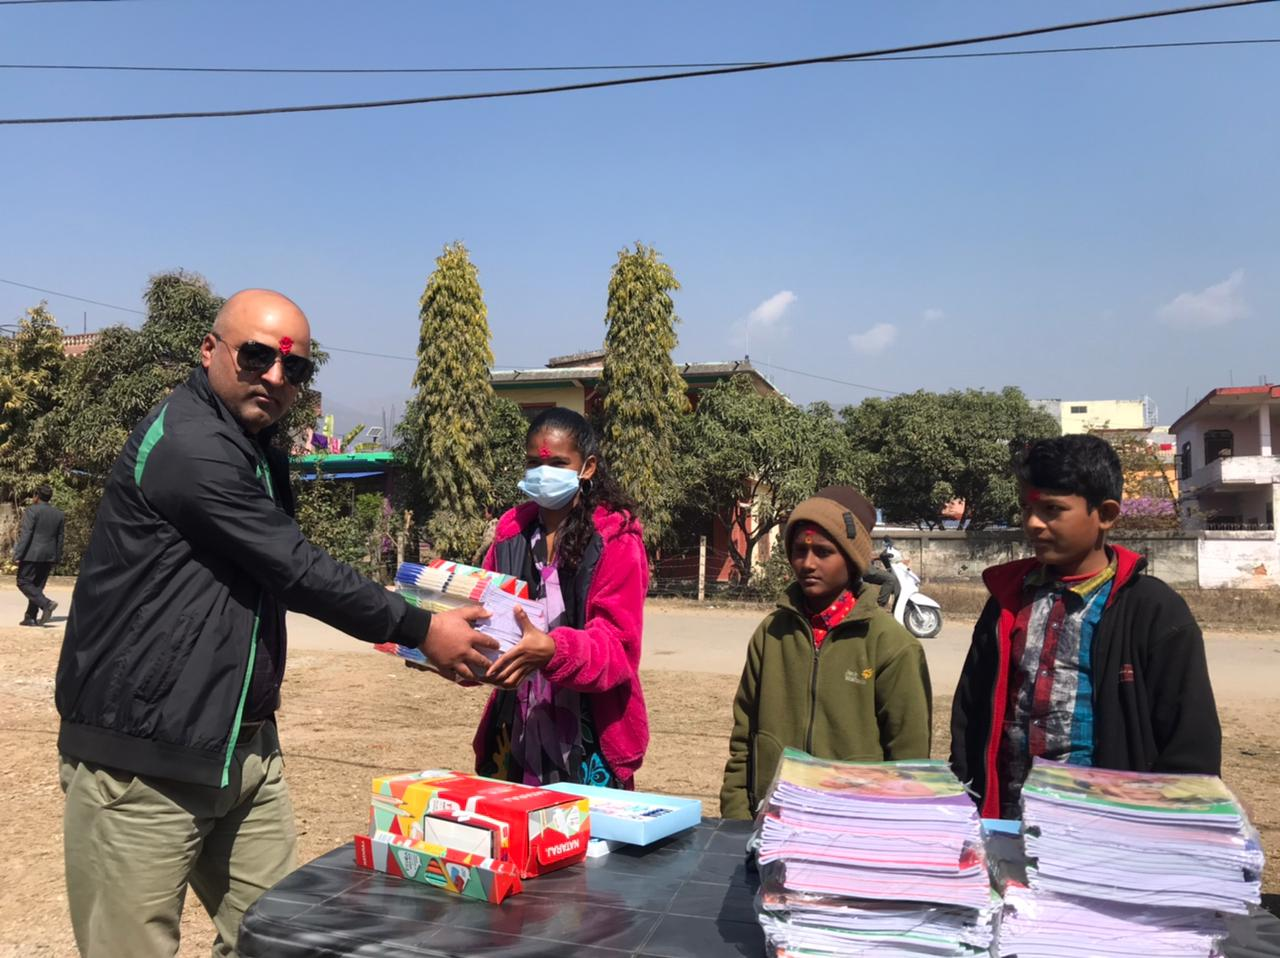 Rossy Foundation Nepal (Asia): Mr Sailendra Bista presenting study materials to students in Nepal.